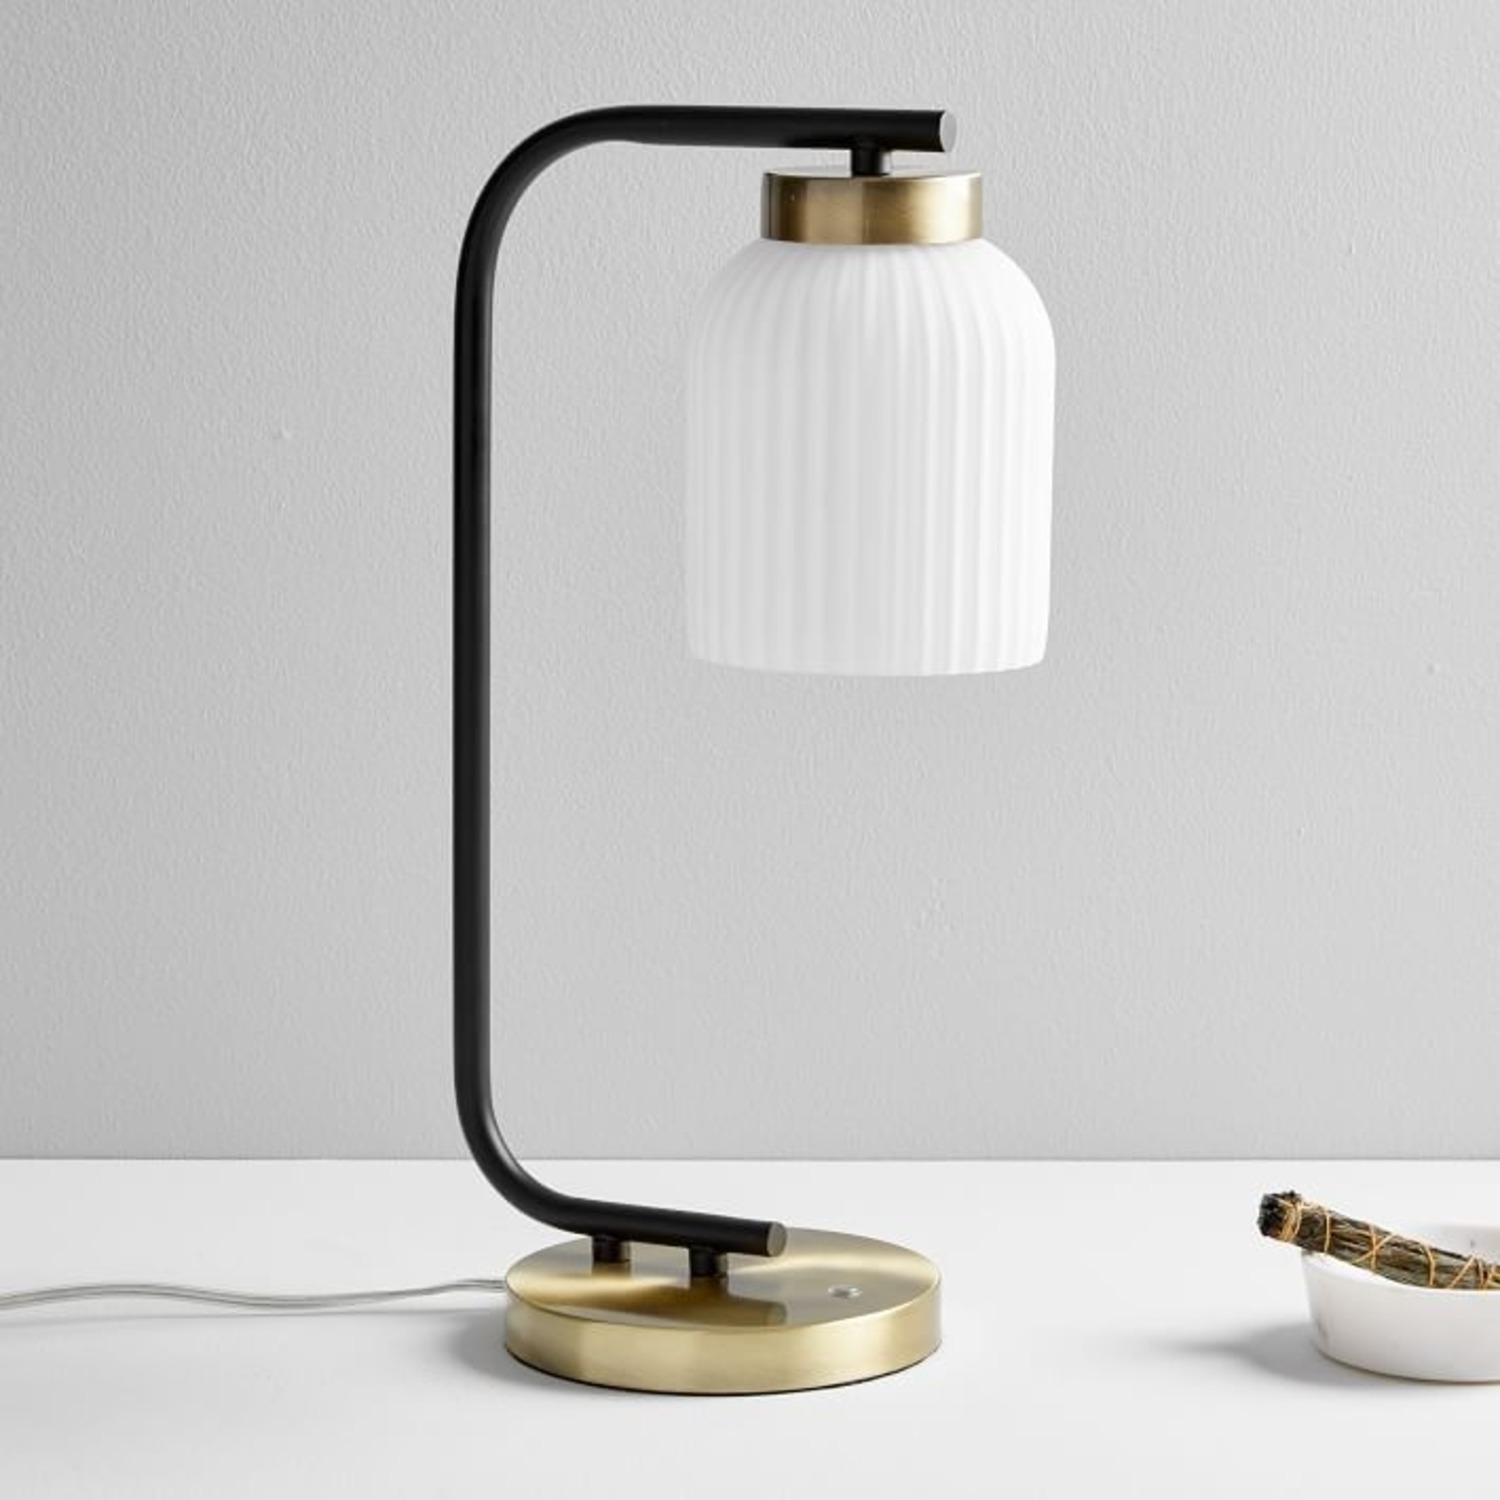 West Elm Suspended Glass Table Lamp - image-1